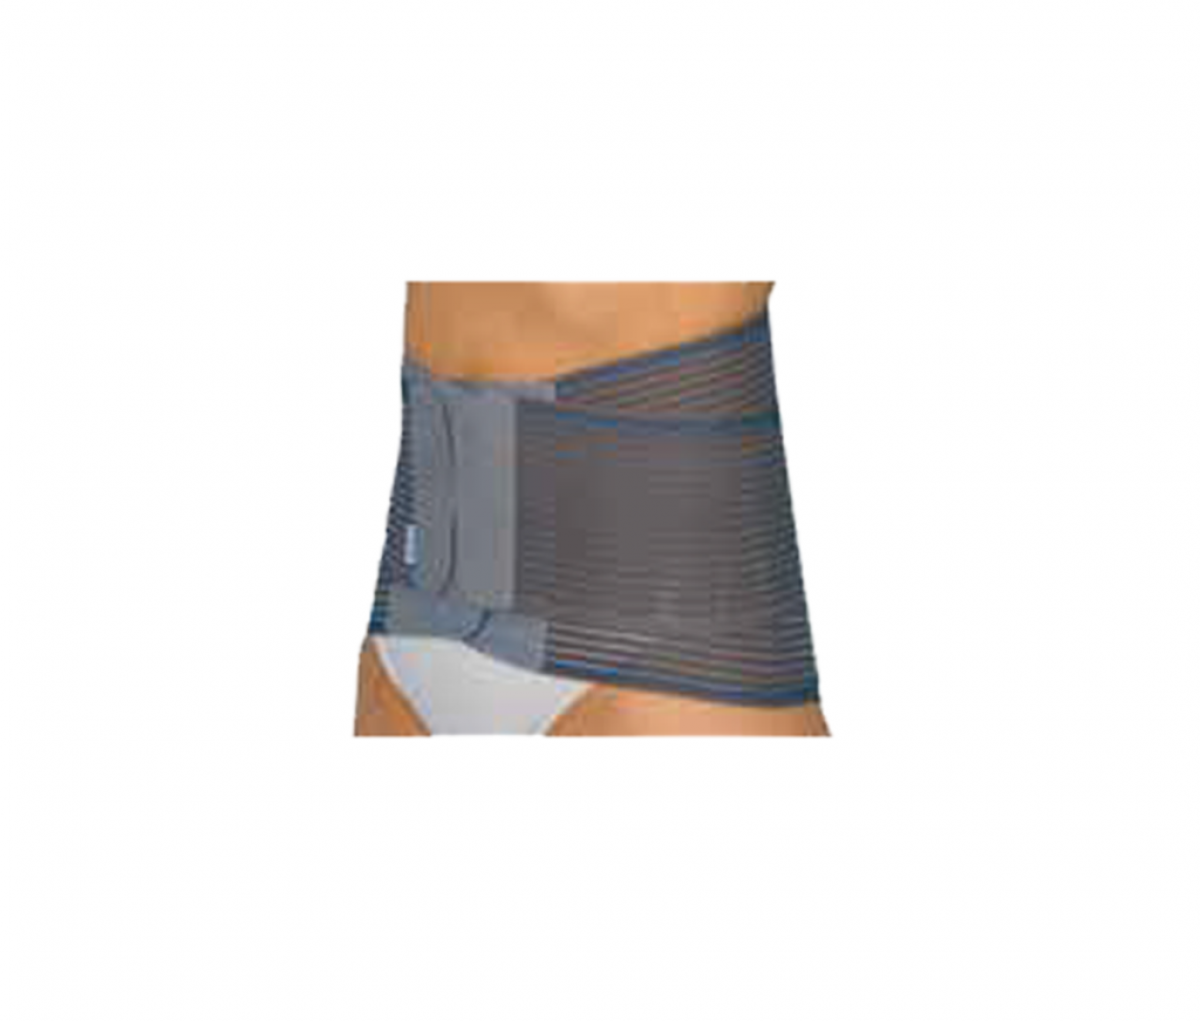 ACTION SEMIRIGID BACK SUPPORT WITH TENSOR - XS 981G